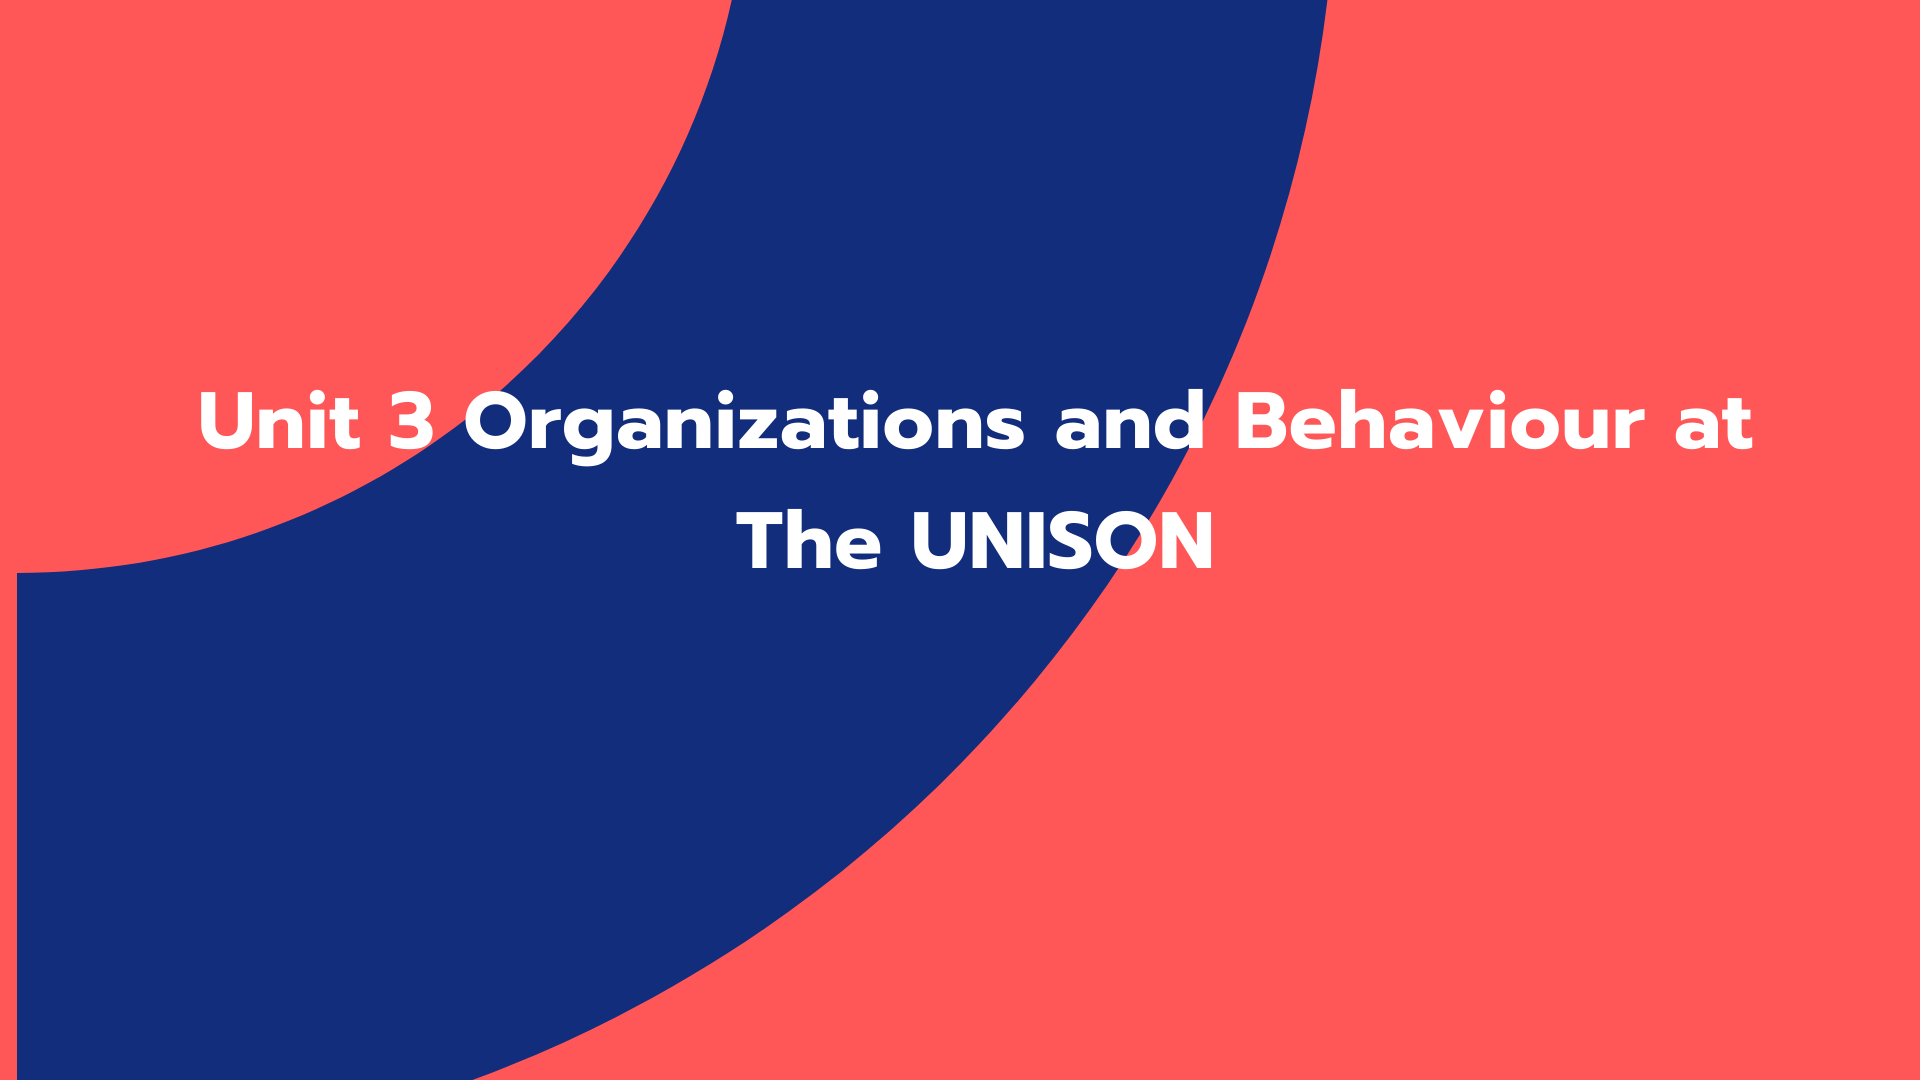 Unit 3 Organizations and Behaviour at The UNISON